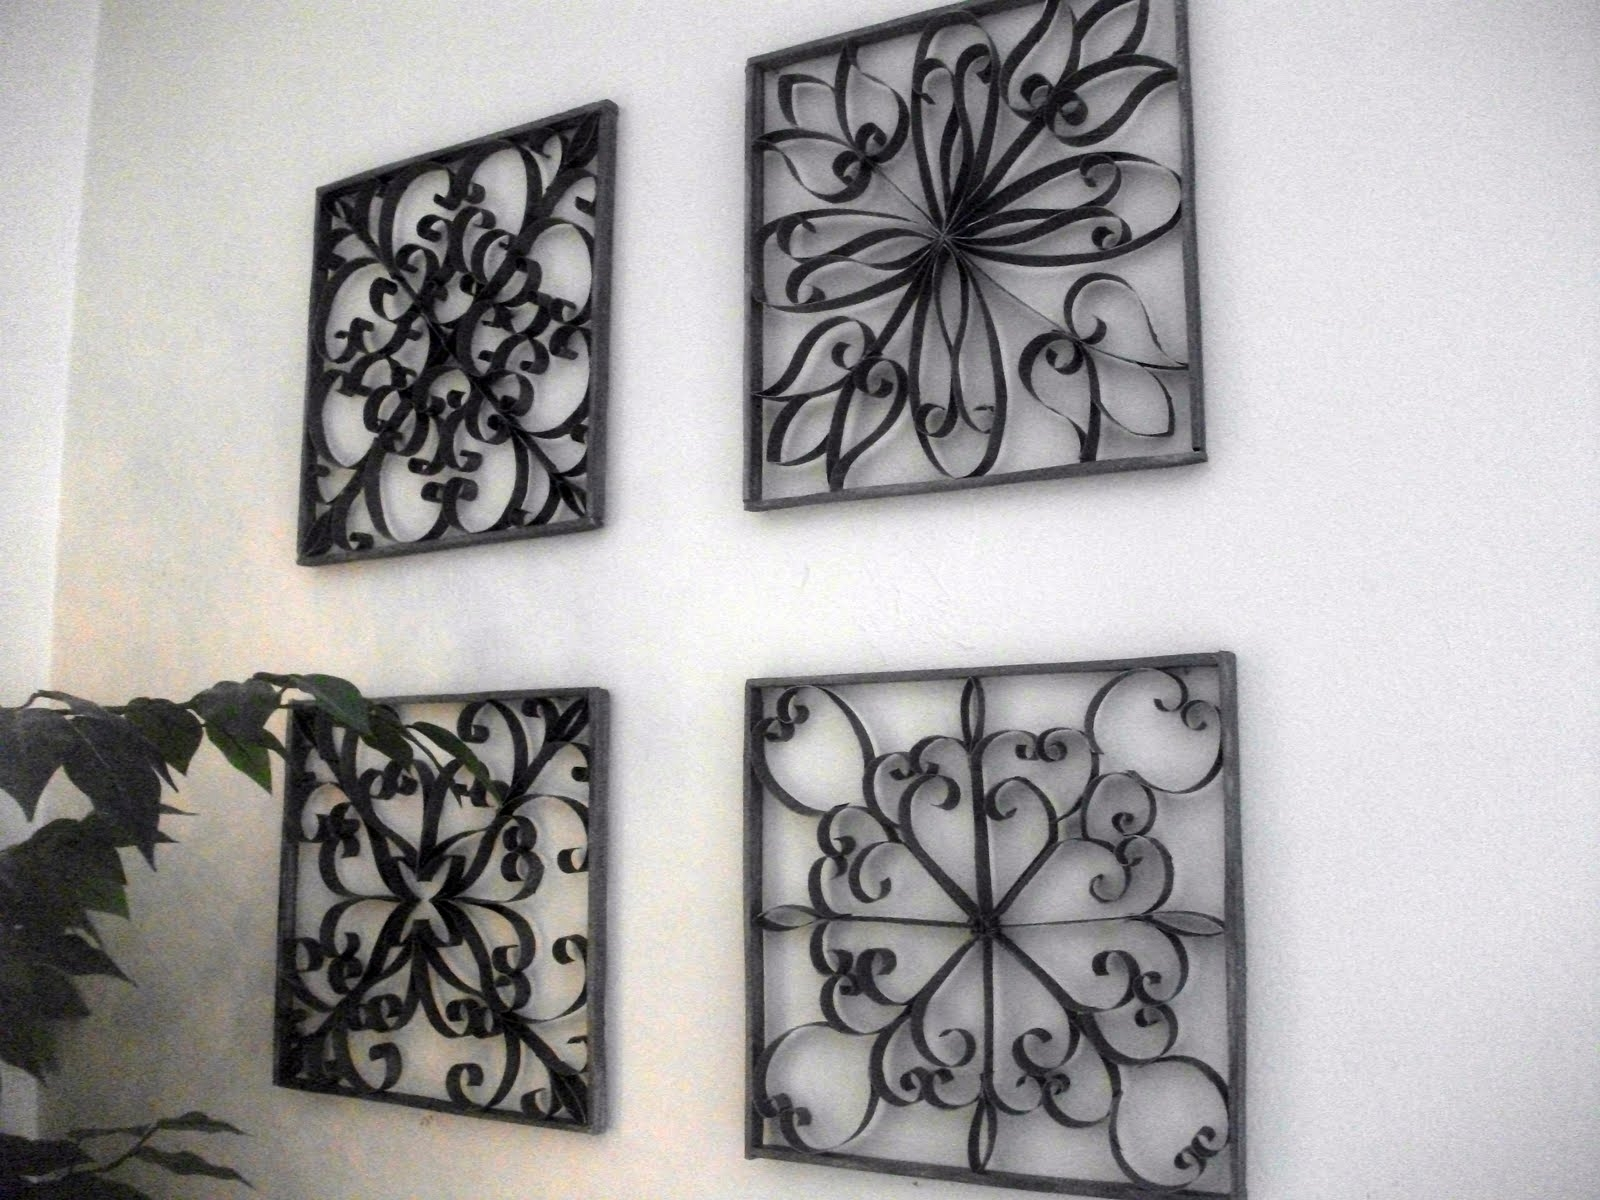 Faux Wrought Iron Wall Art | The Blog With Regard To Most Popular Toilet Paper Roll Wall Art (View 4 of 20)